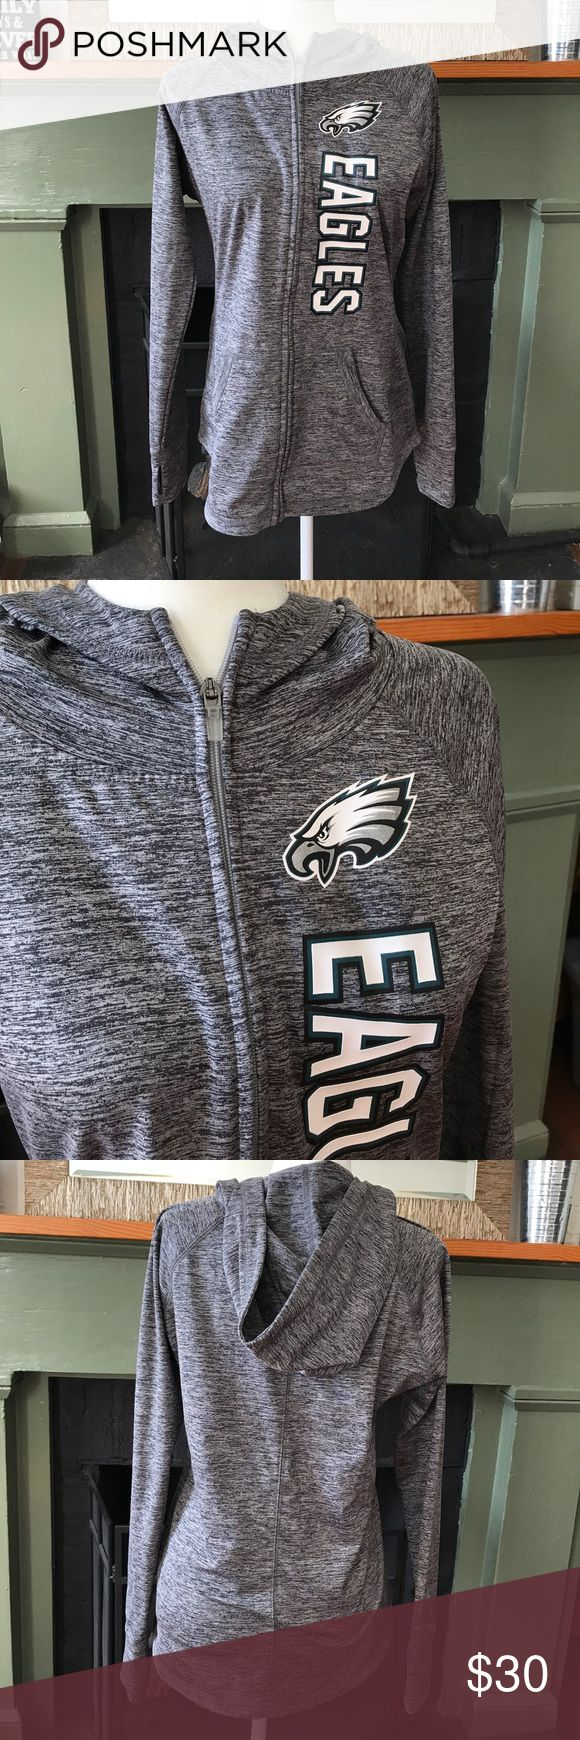 Philadelphia Eagles Fleece lined hooded jacket Marled gray with the Eagles name and logo.  Full zip, thumbholes, hood, fleece lined, excellent condition.  NFL Team apparel, size Women's Medium. NFL Team Apparel Jackets & Coats